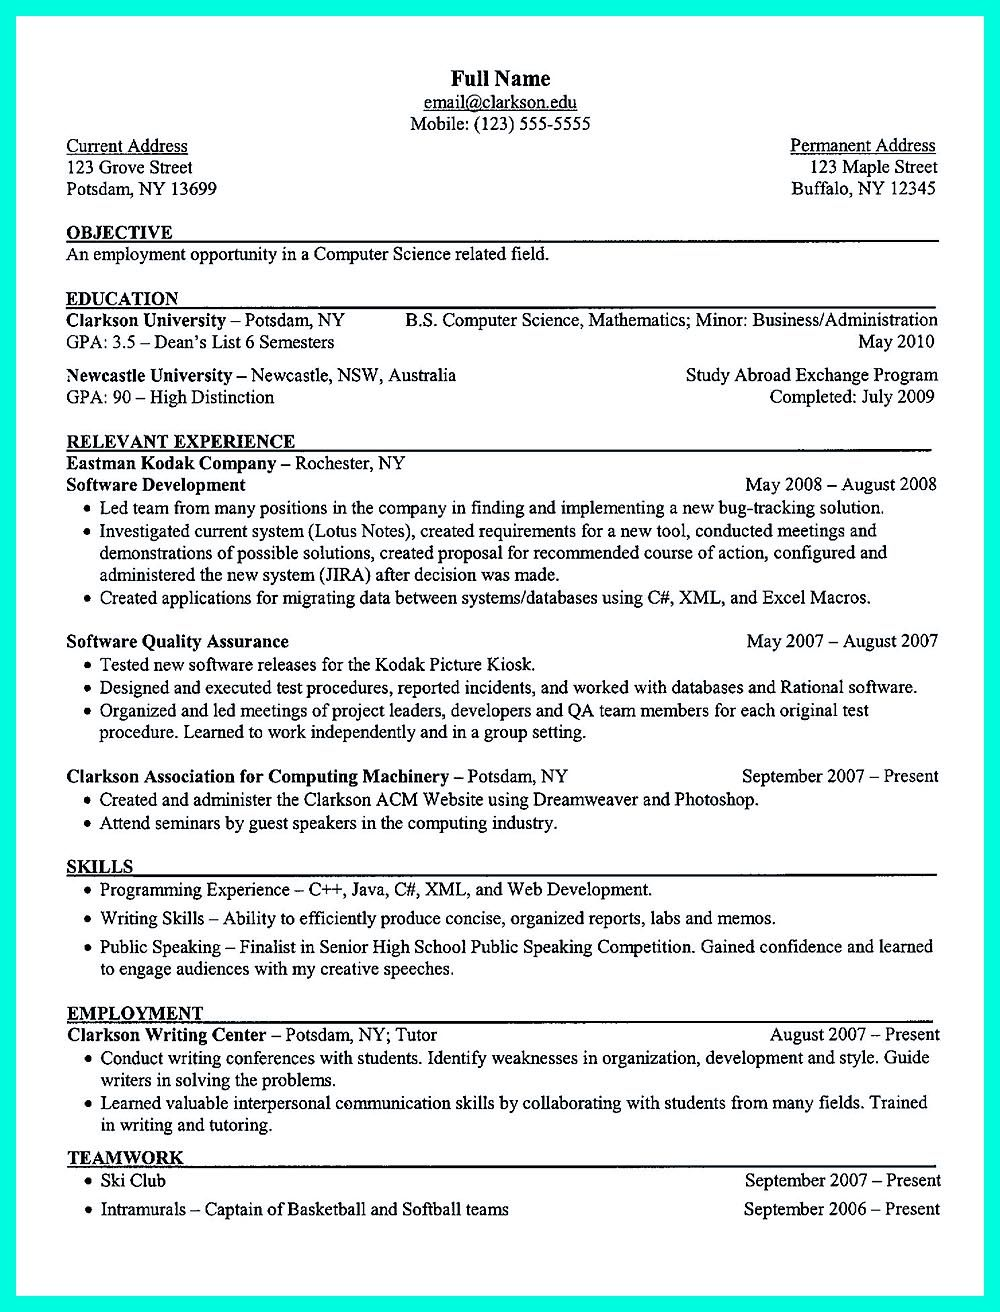 what you will include in the computer science resume depends on what you will include in - Computer Science Resume Sample